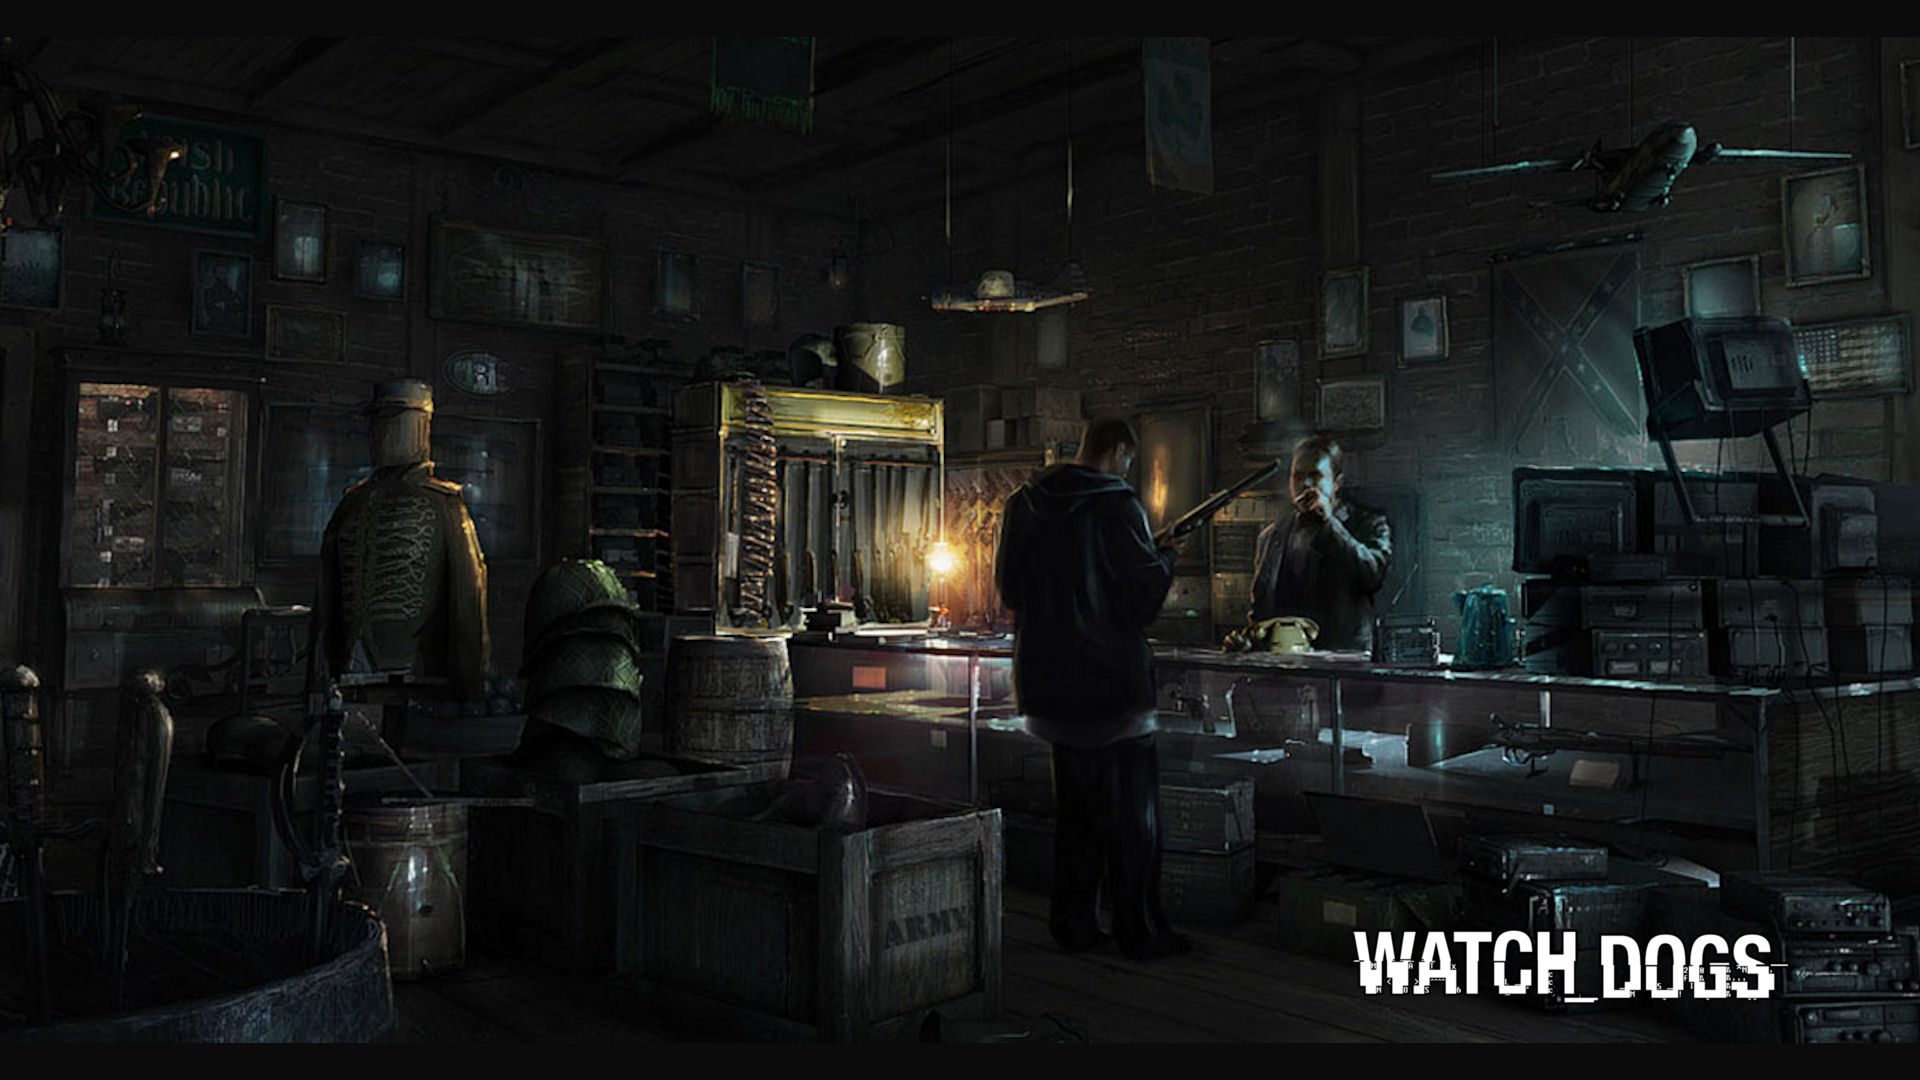 Watch Dogs Weapons Wallpaper